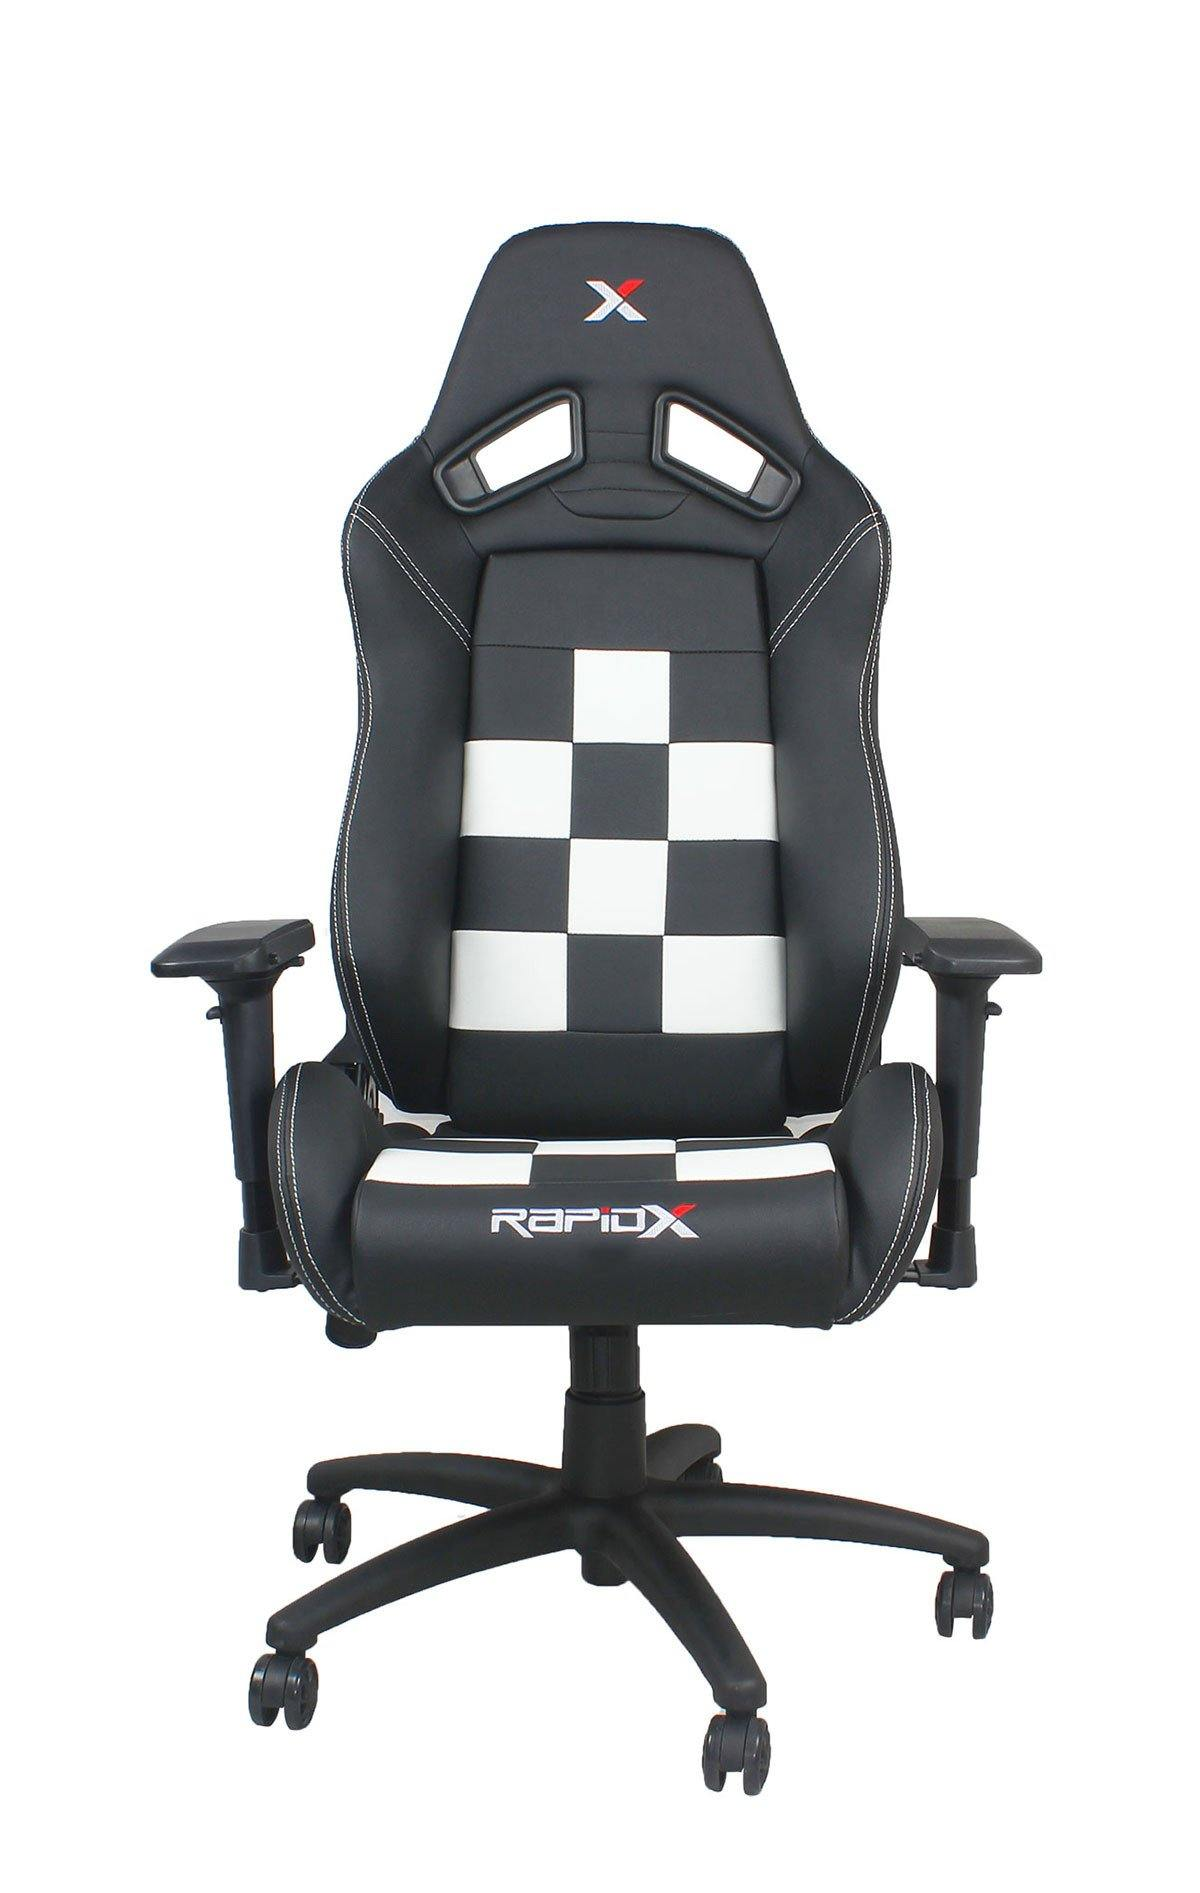 Finish Line Chair White on Black – RapidX